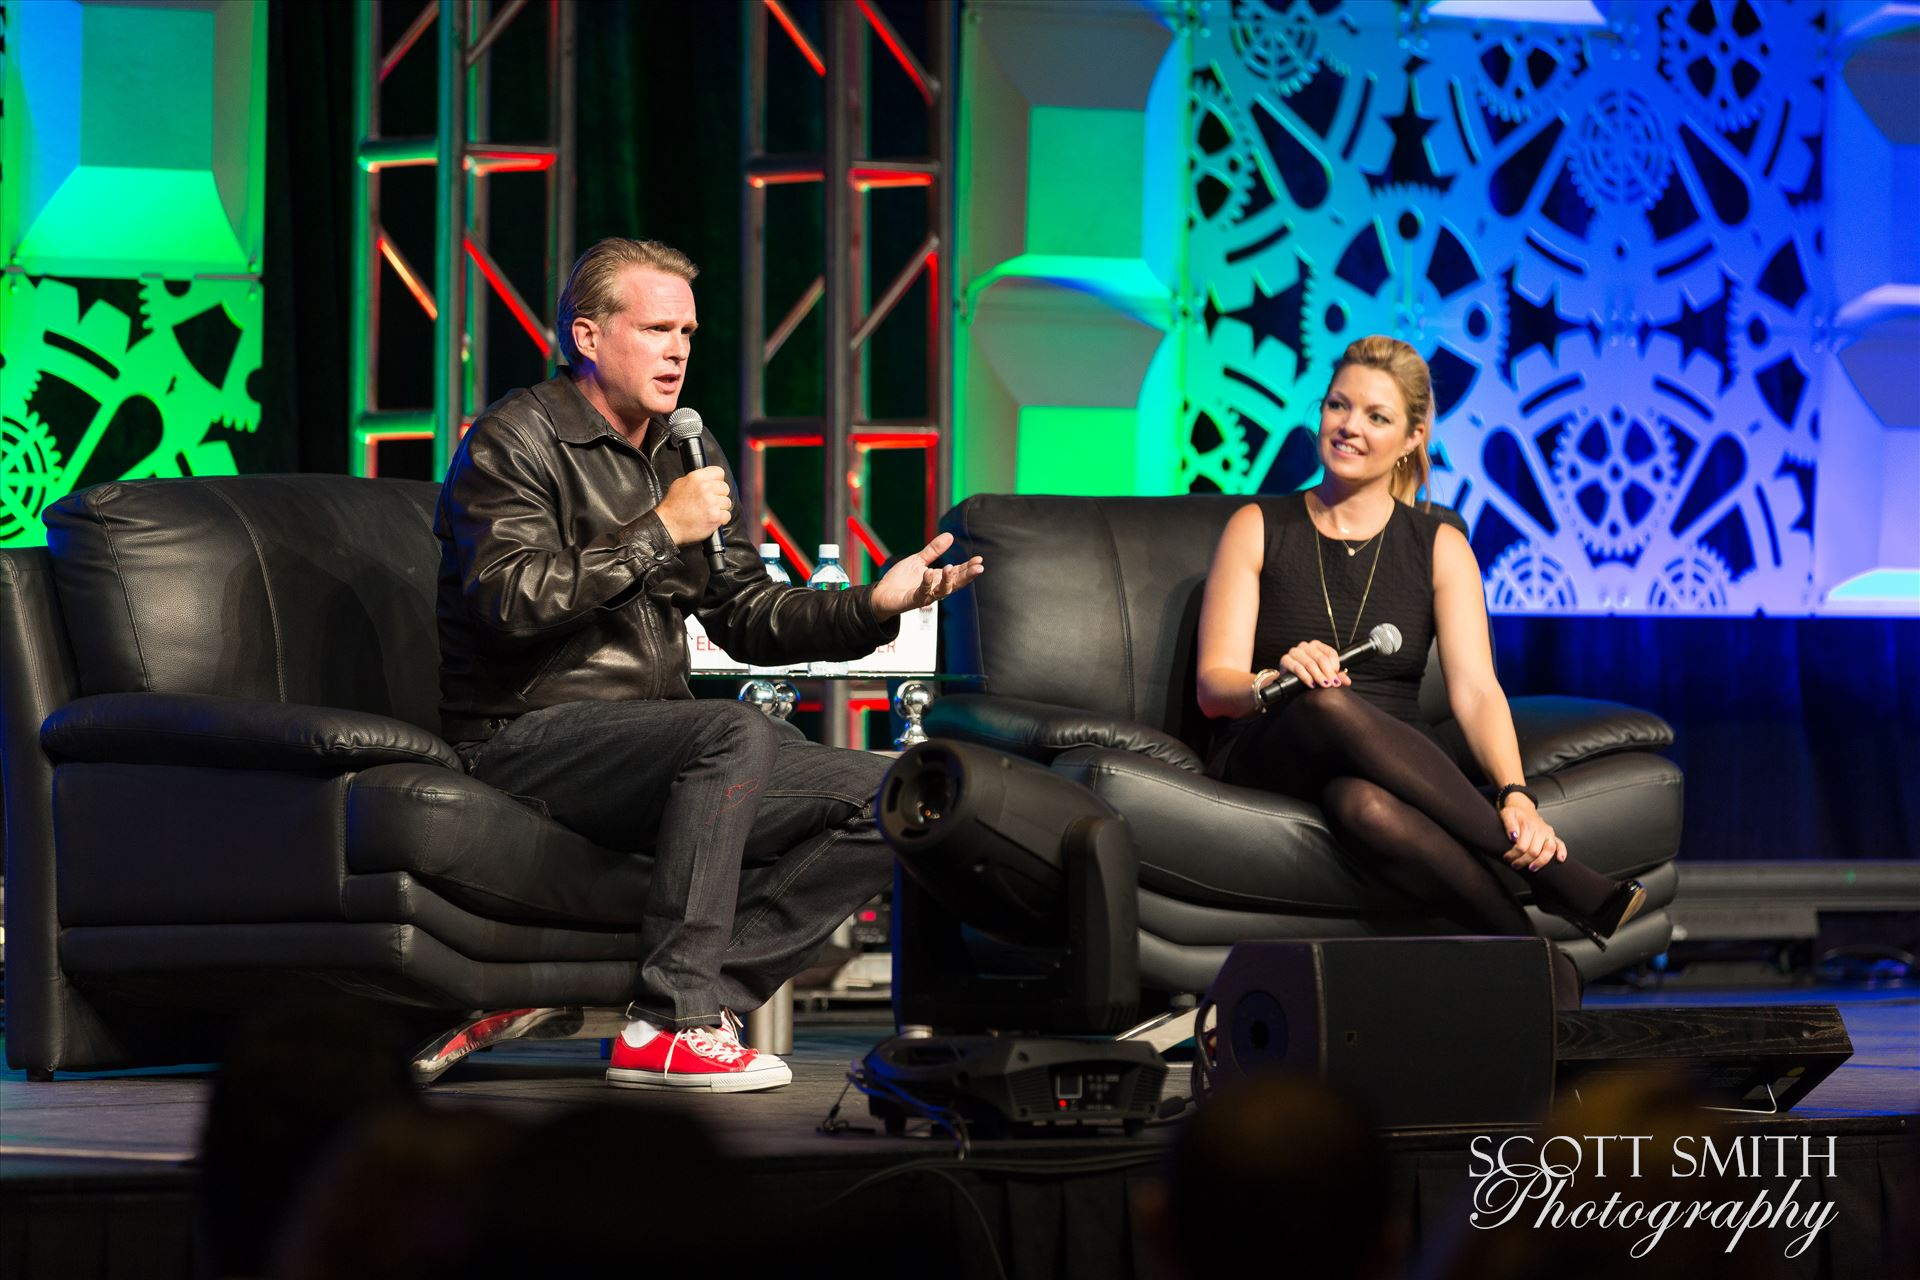 Denver Comic Con 2016 29 - Denver Comic Con 2016 at the Colorado Convention Center. Clare Kramer and Cary Elwes. by D Scott Smith